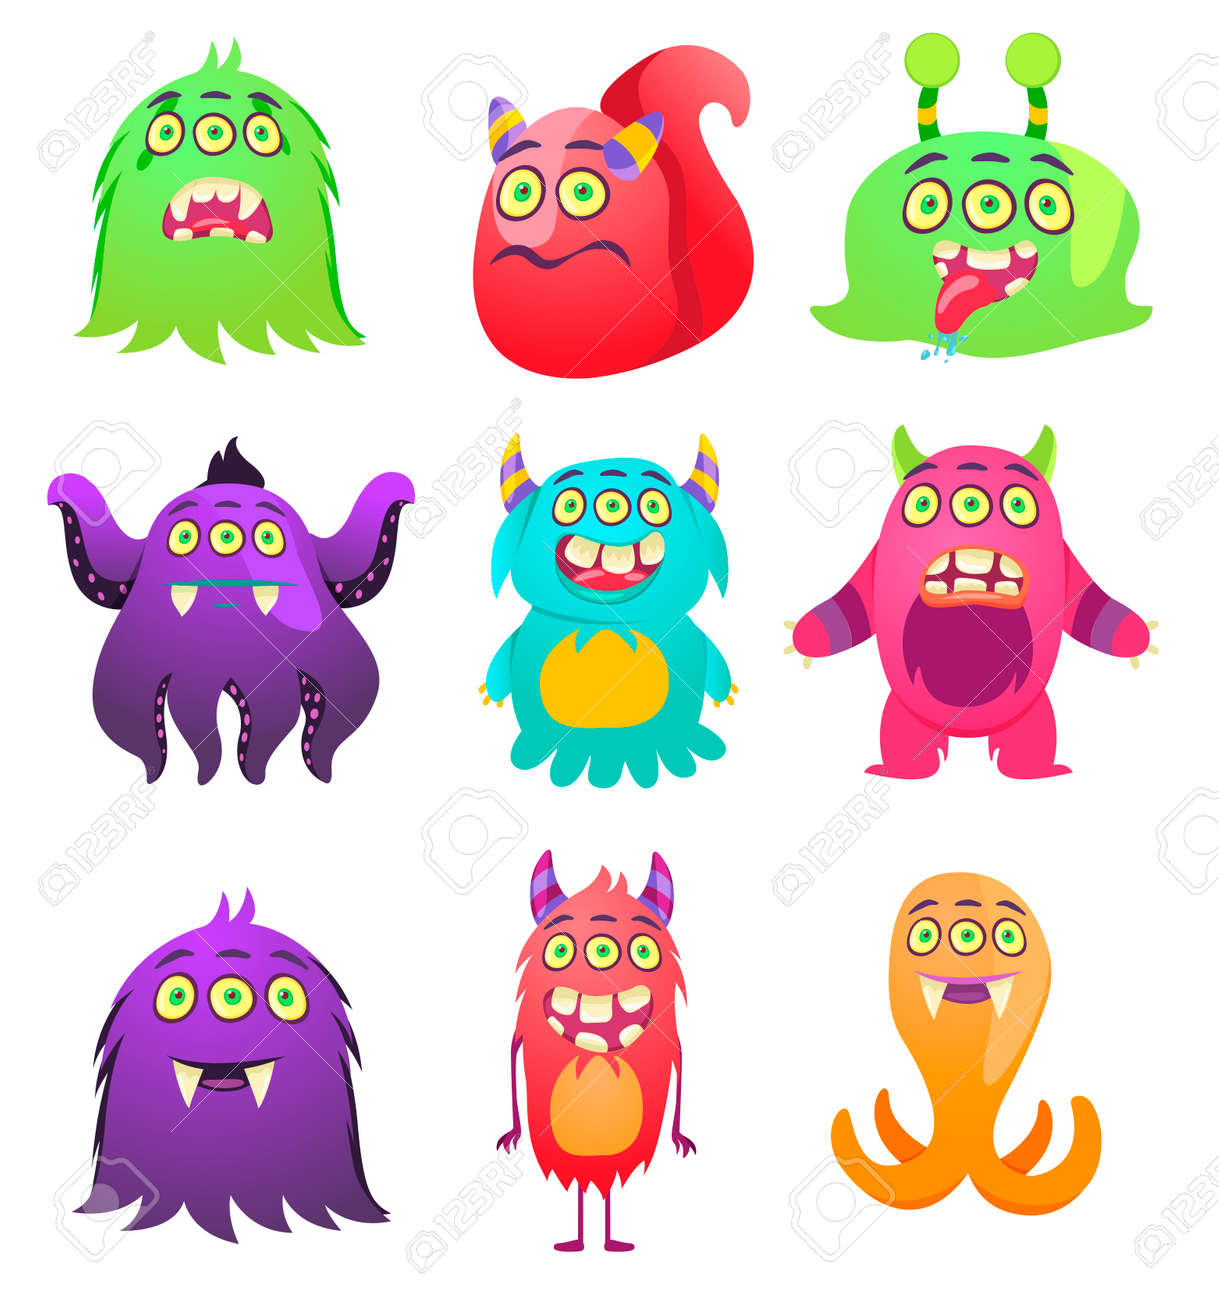 Cute Monsters Cartoon Aliens From Space For Kindergarten Children Royalty Free Cliparts Vectors And Stock Illustration Image 118917964